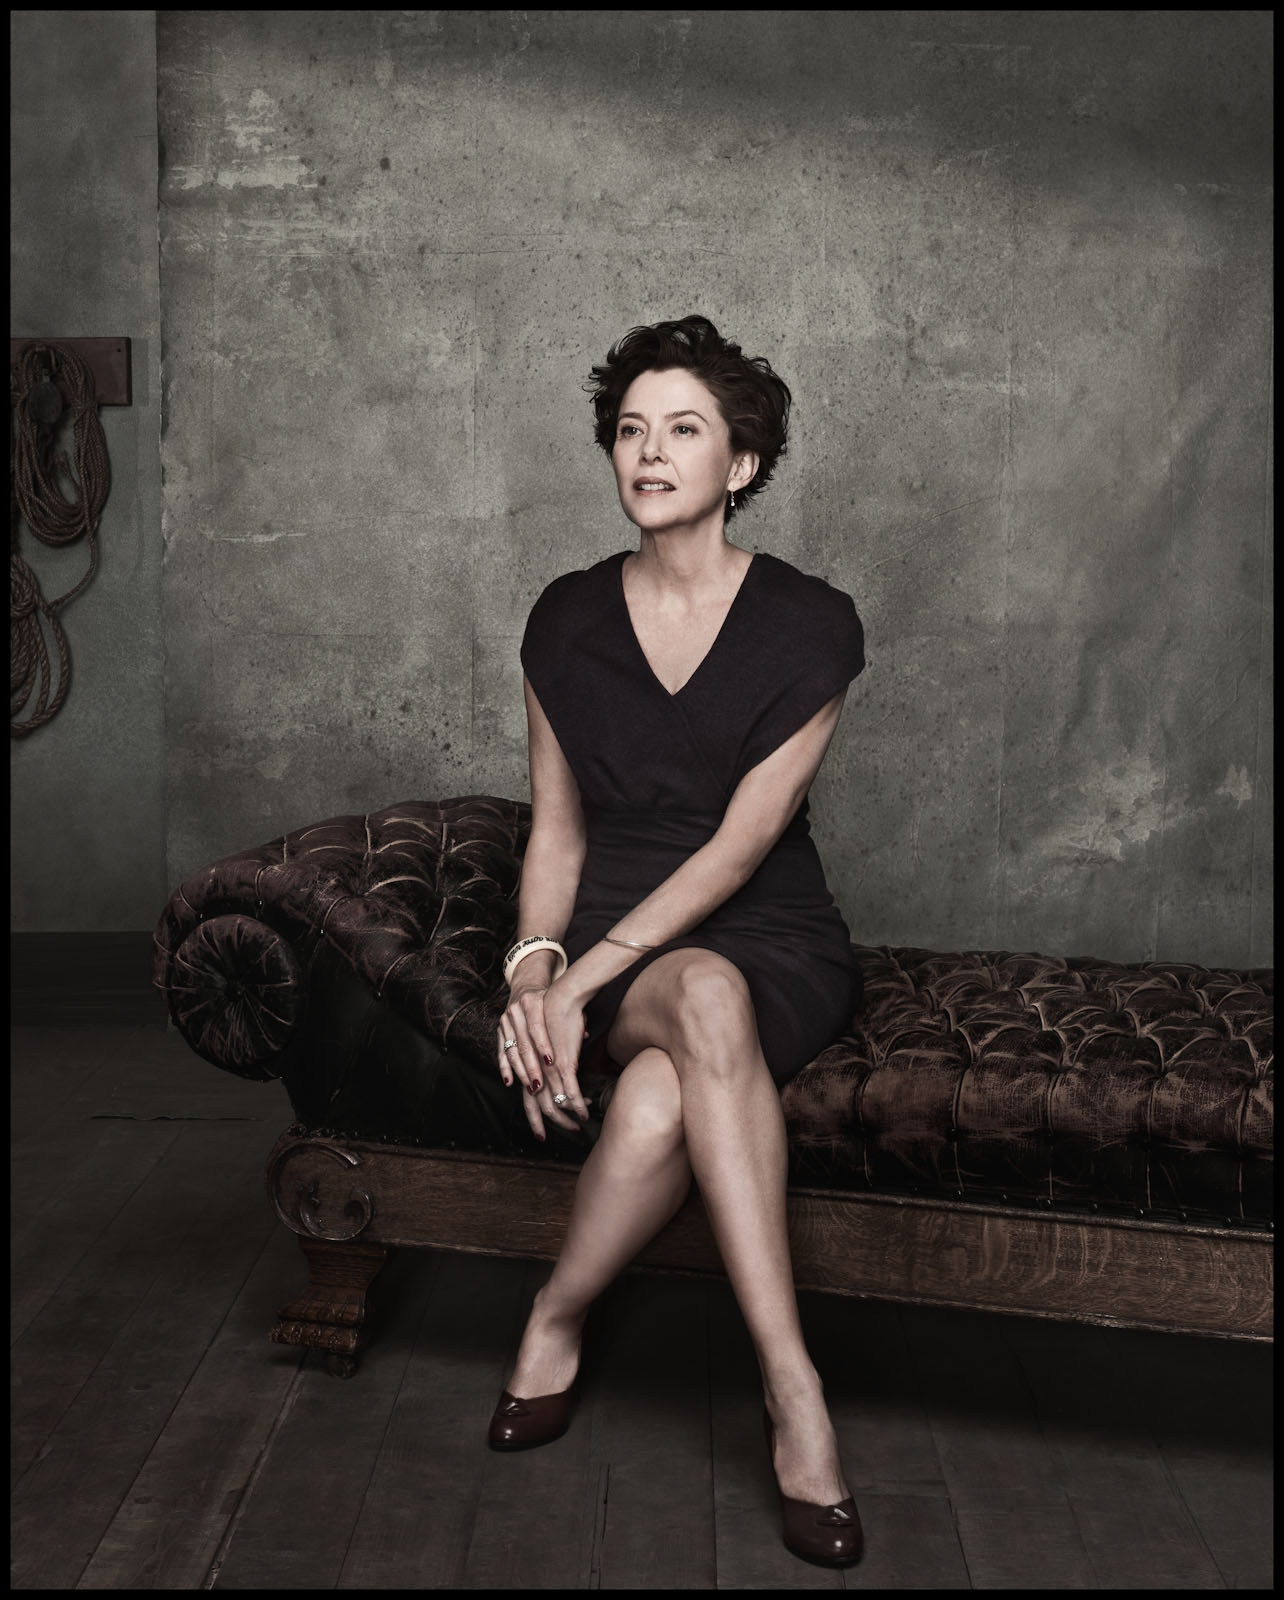 Annette Bening - Hollywood, CA - Newsweek